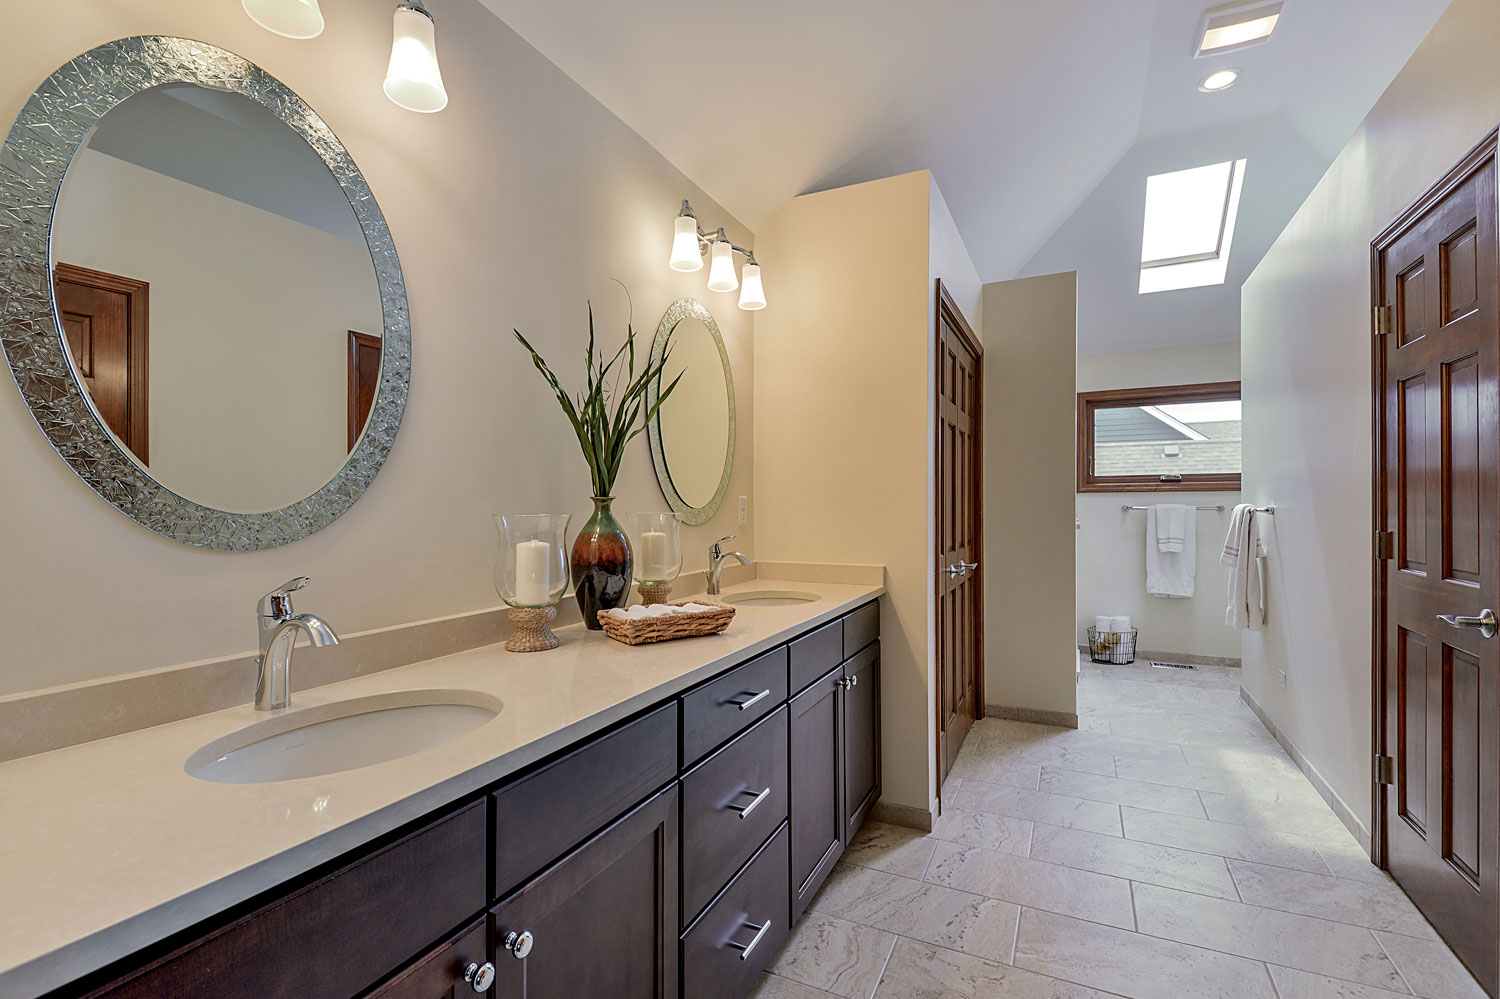 Paul eileen 39 s master bathroom remodel pictures home for Remodel design services